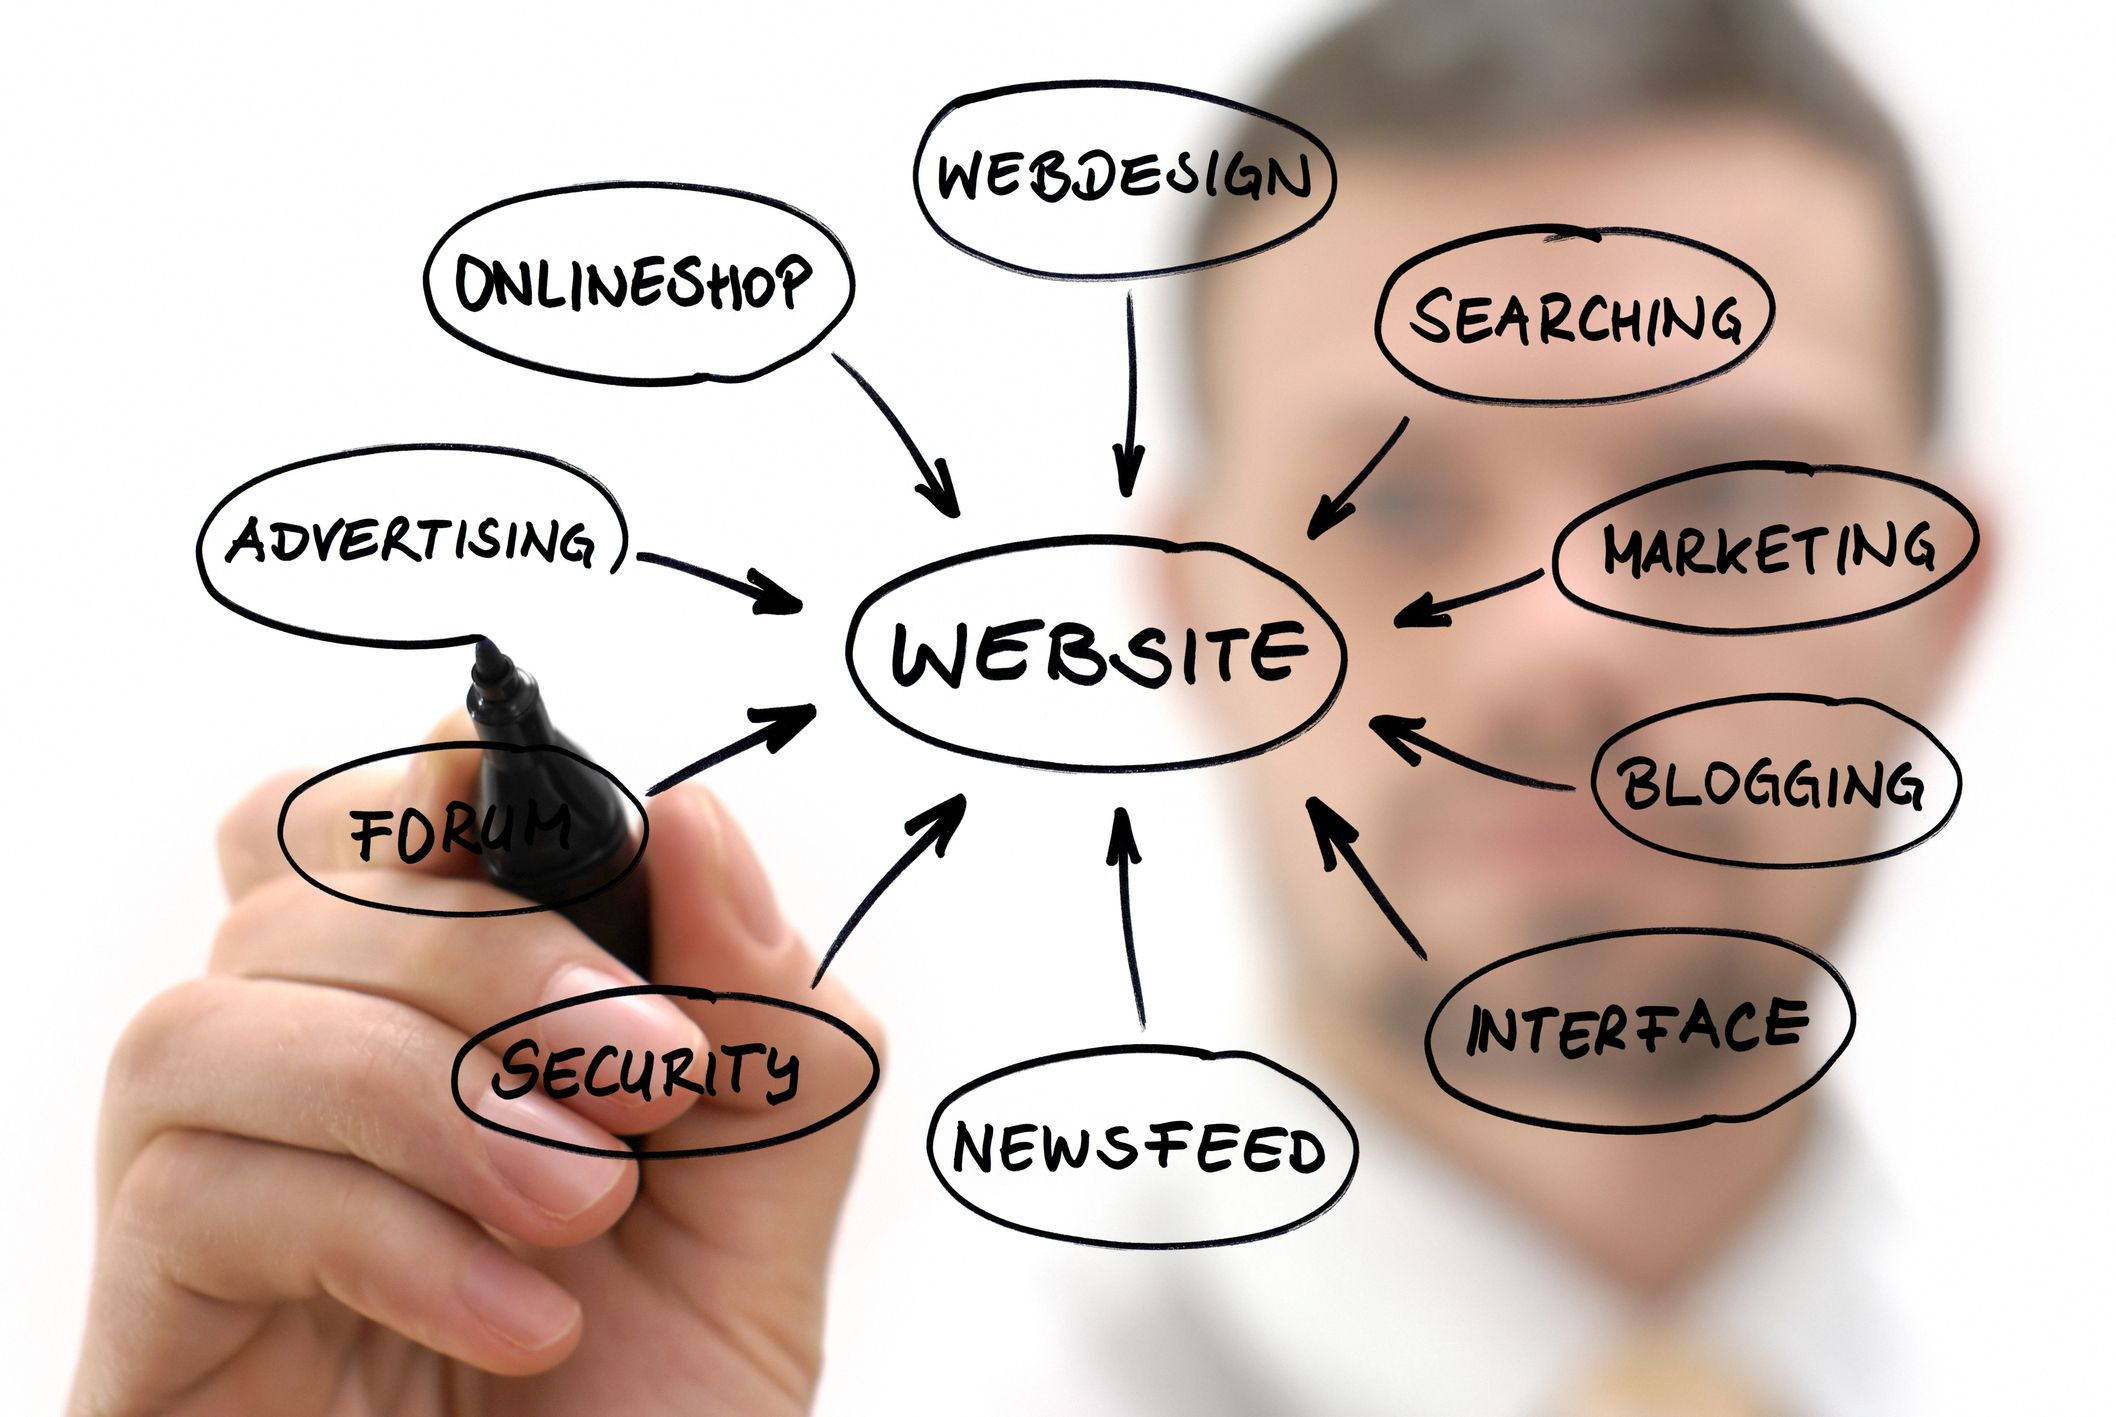 Implementing A Website In The Web Design Process